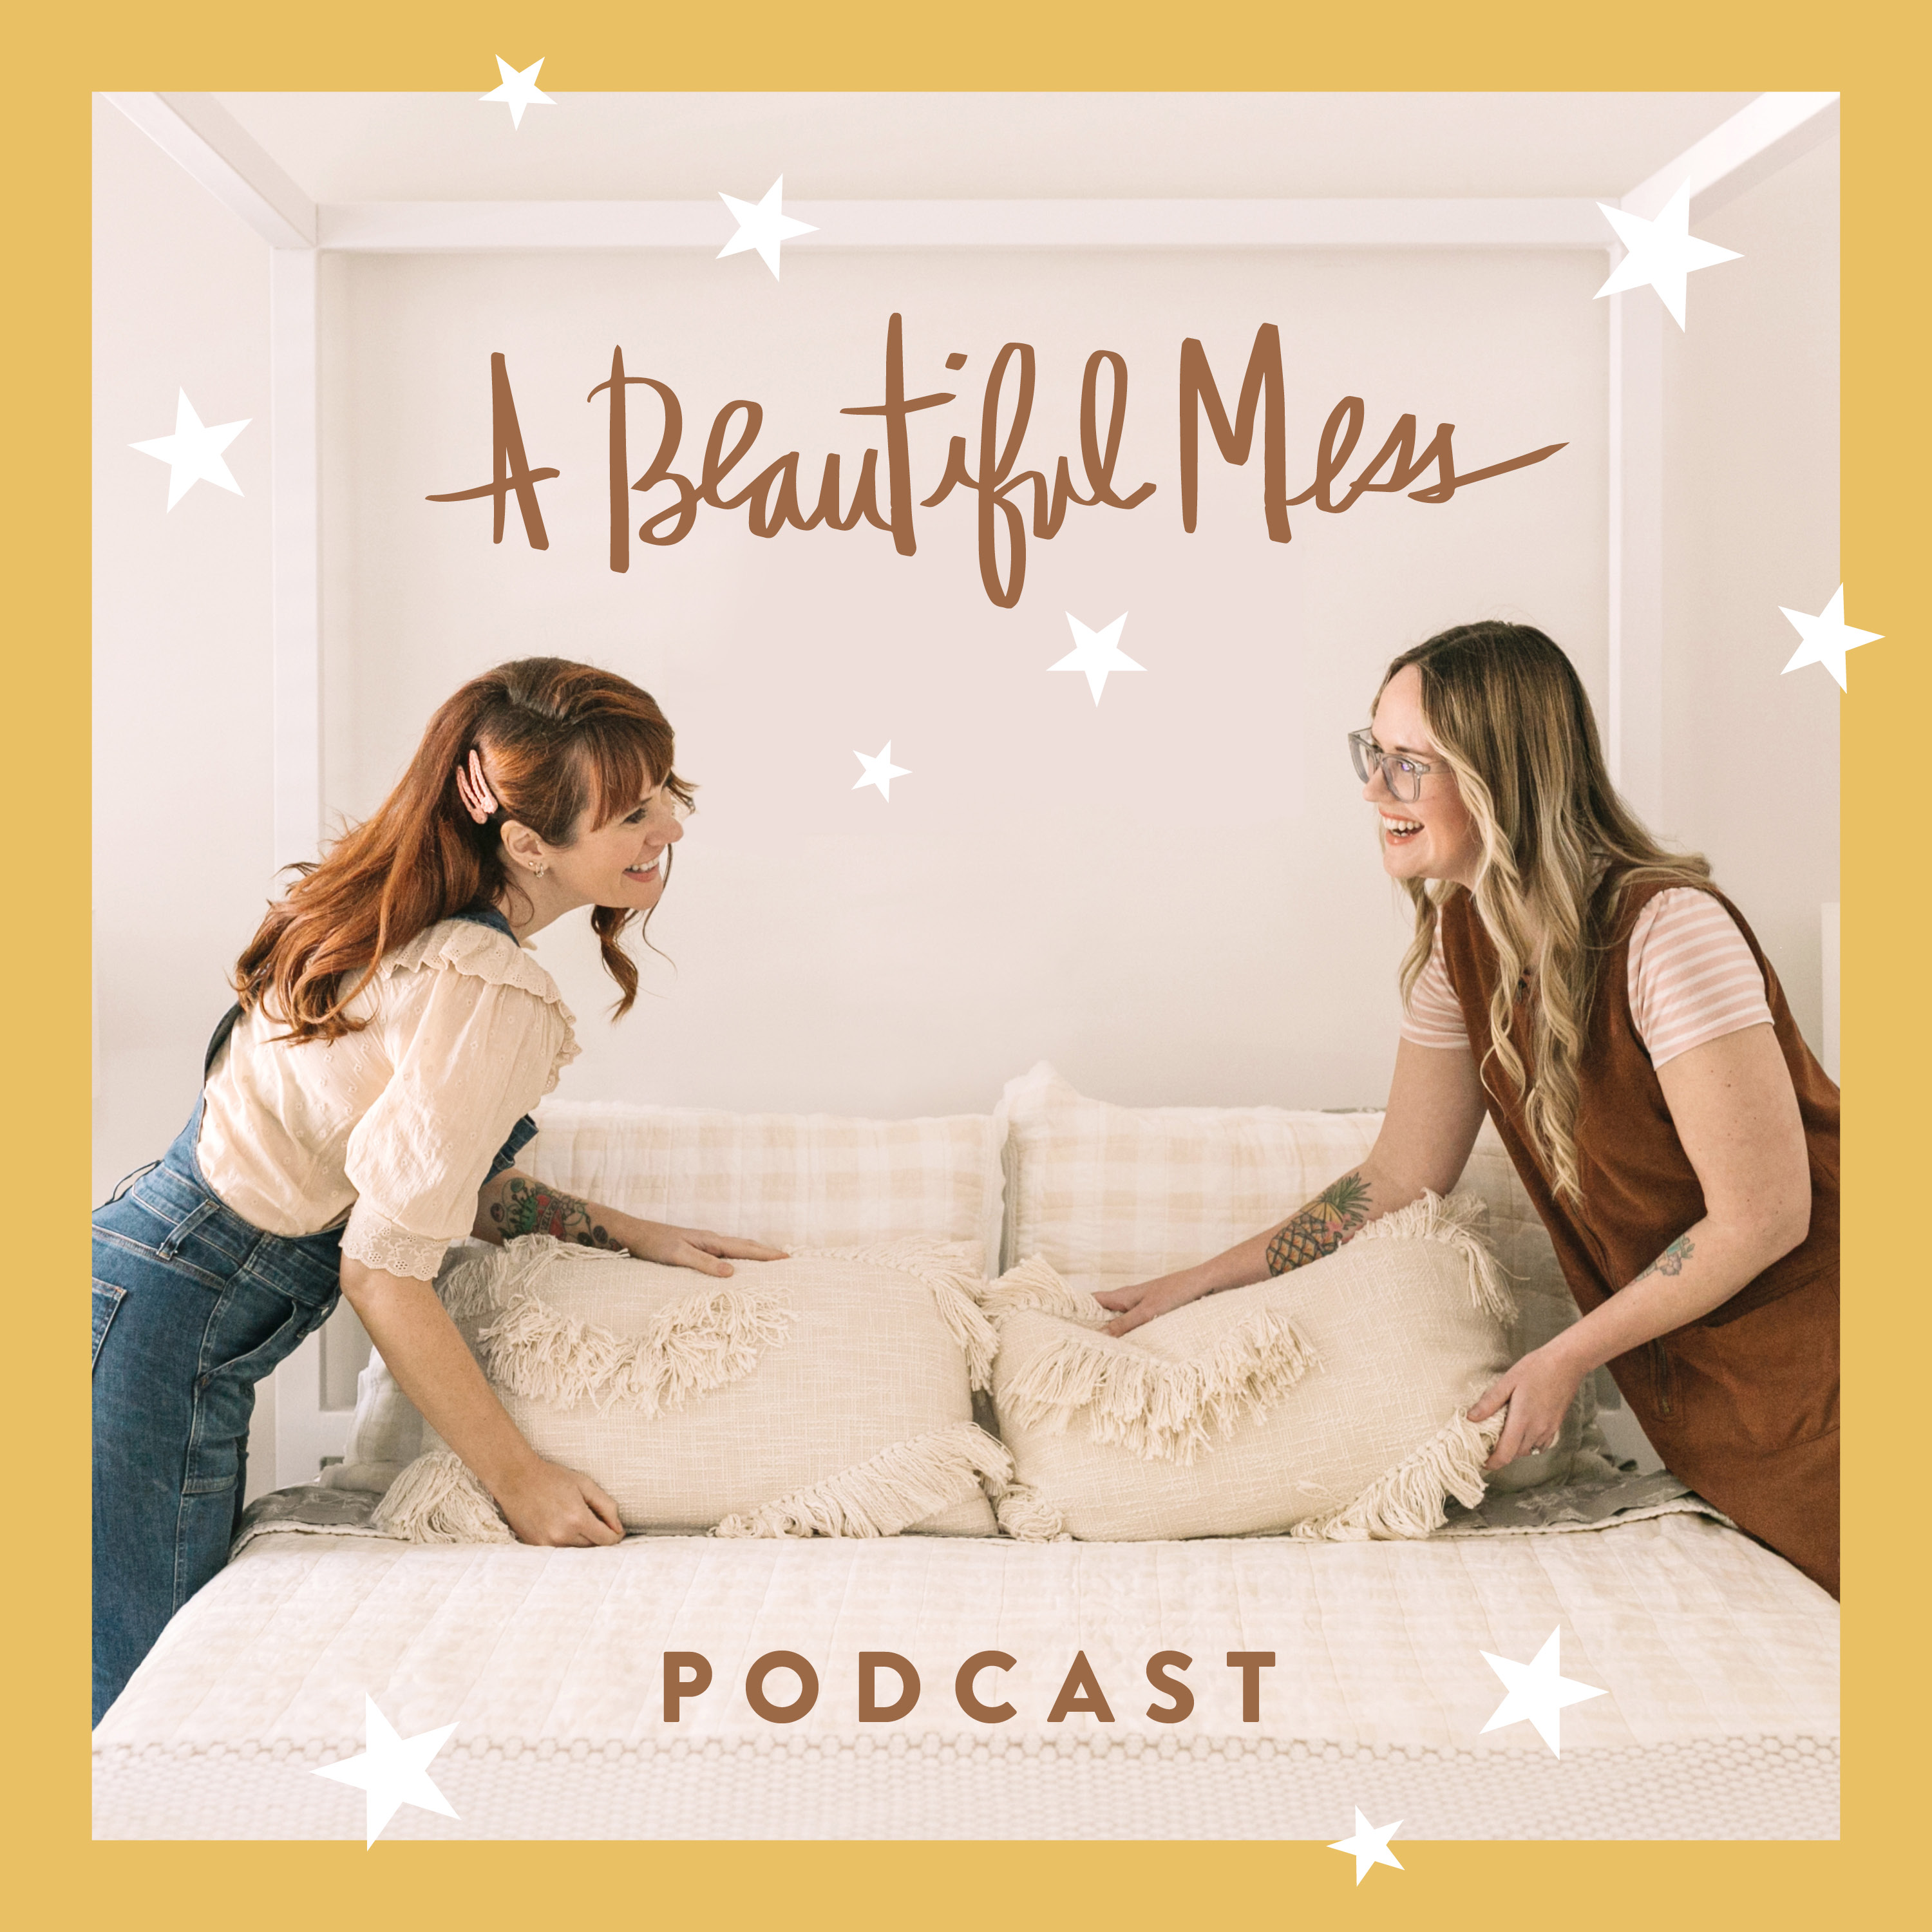 A Beautiful Mess Podcast is Here!!!!, Wustoo